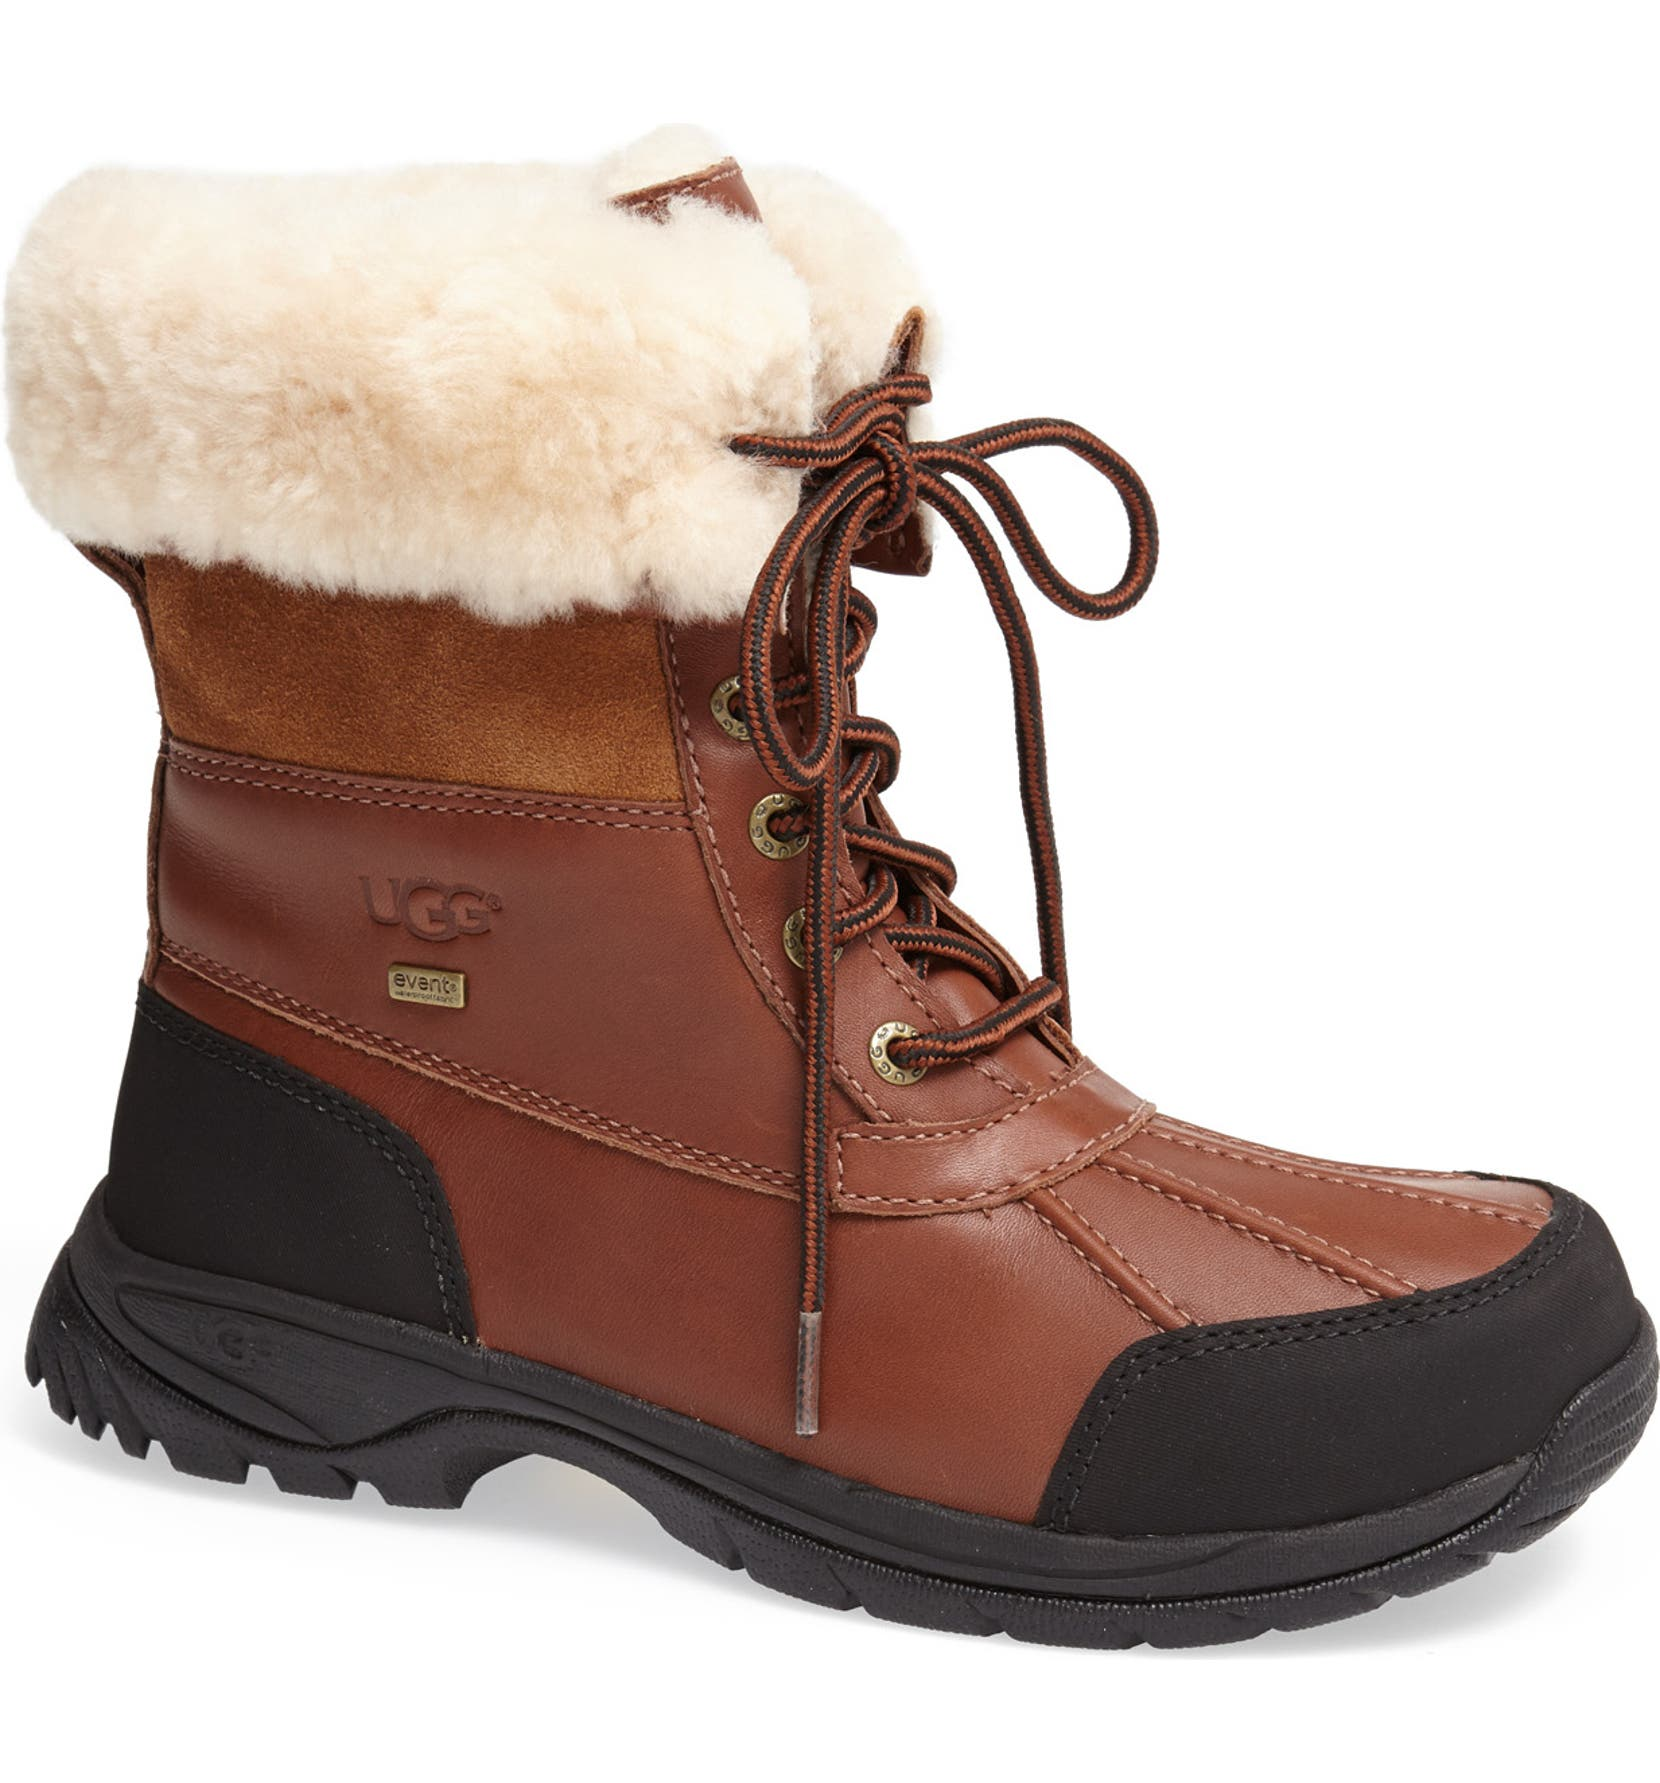 limited style online for sale amazing price Butte Waterproof Boot